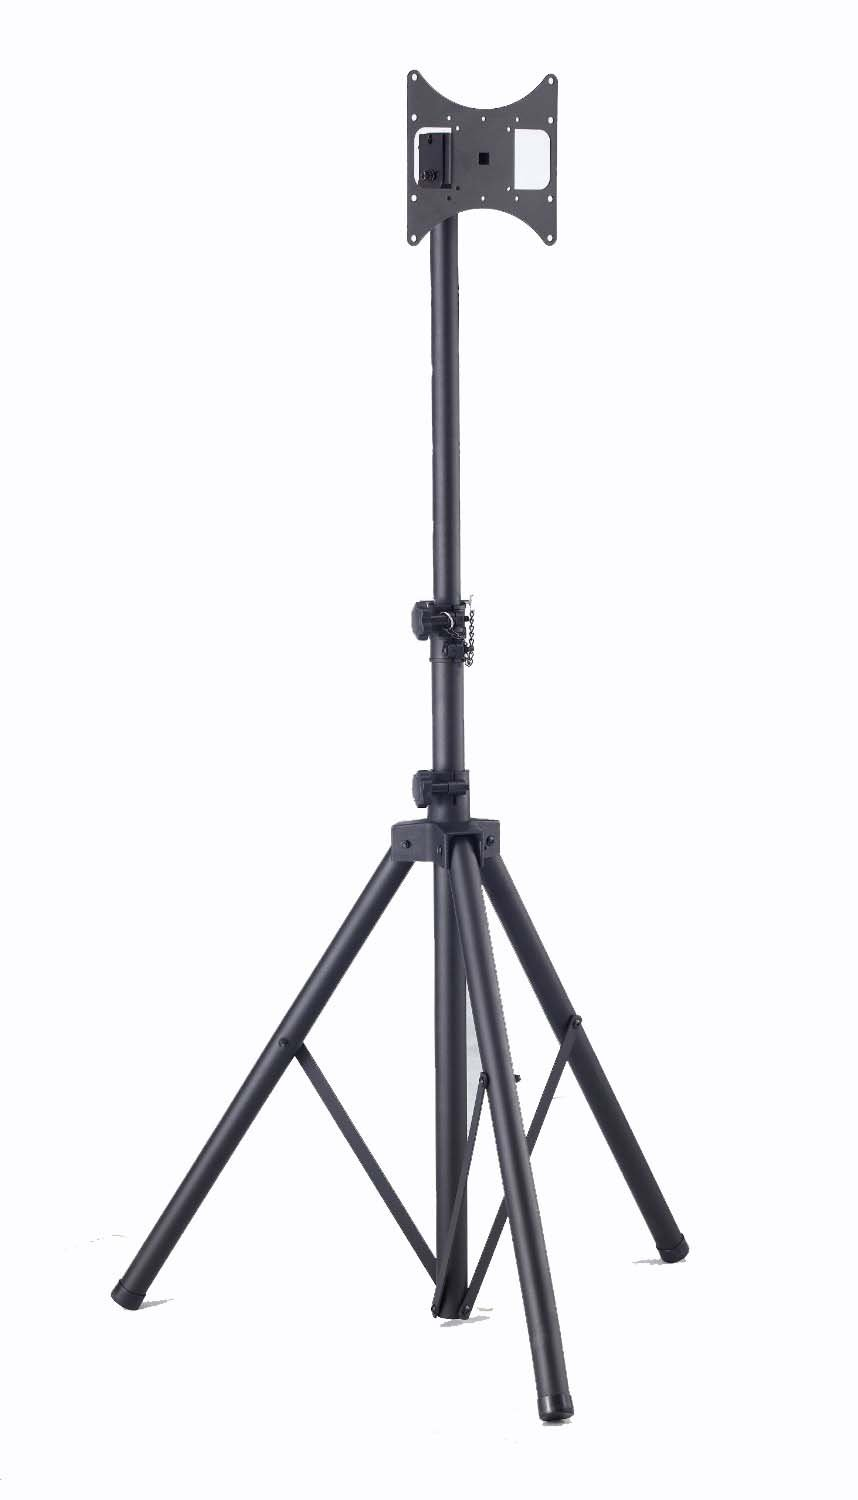 Elitech Steel Portable Plasma or LCD TV Tripod Stand for up to 46'' Flat Panel TV, Height Adjustable. Max Stand Height 70'' by Elitech